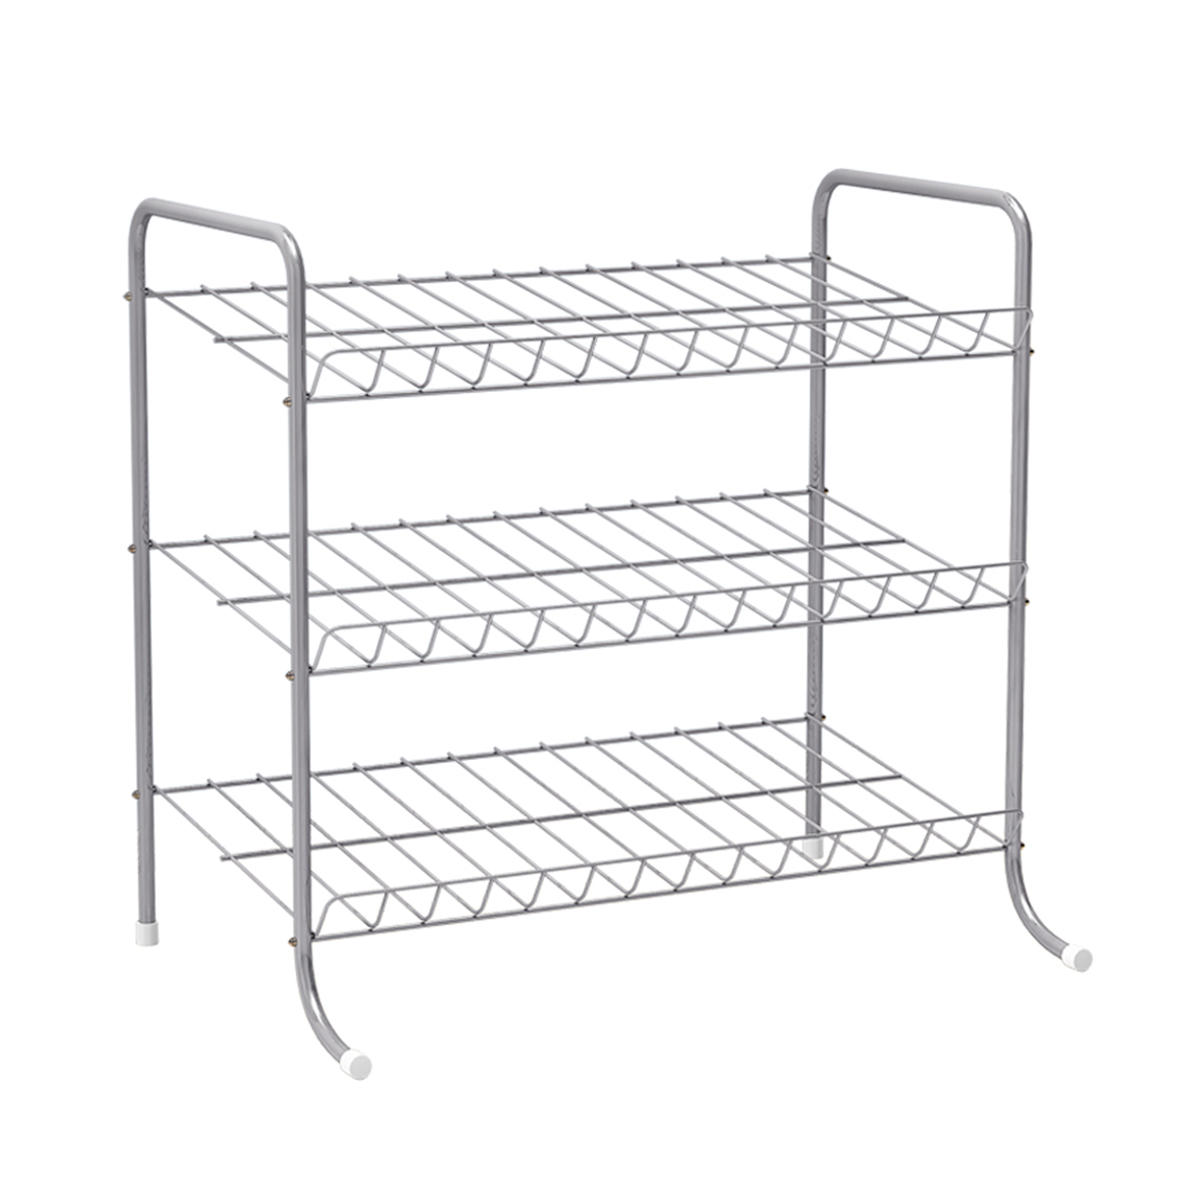 Bottles Jars and Sundries Holder Stand Rack Cabinet Metal Wire Kitchen